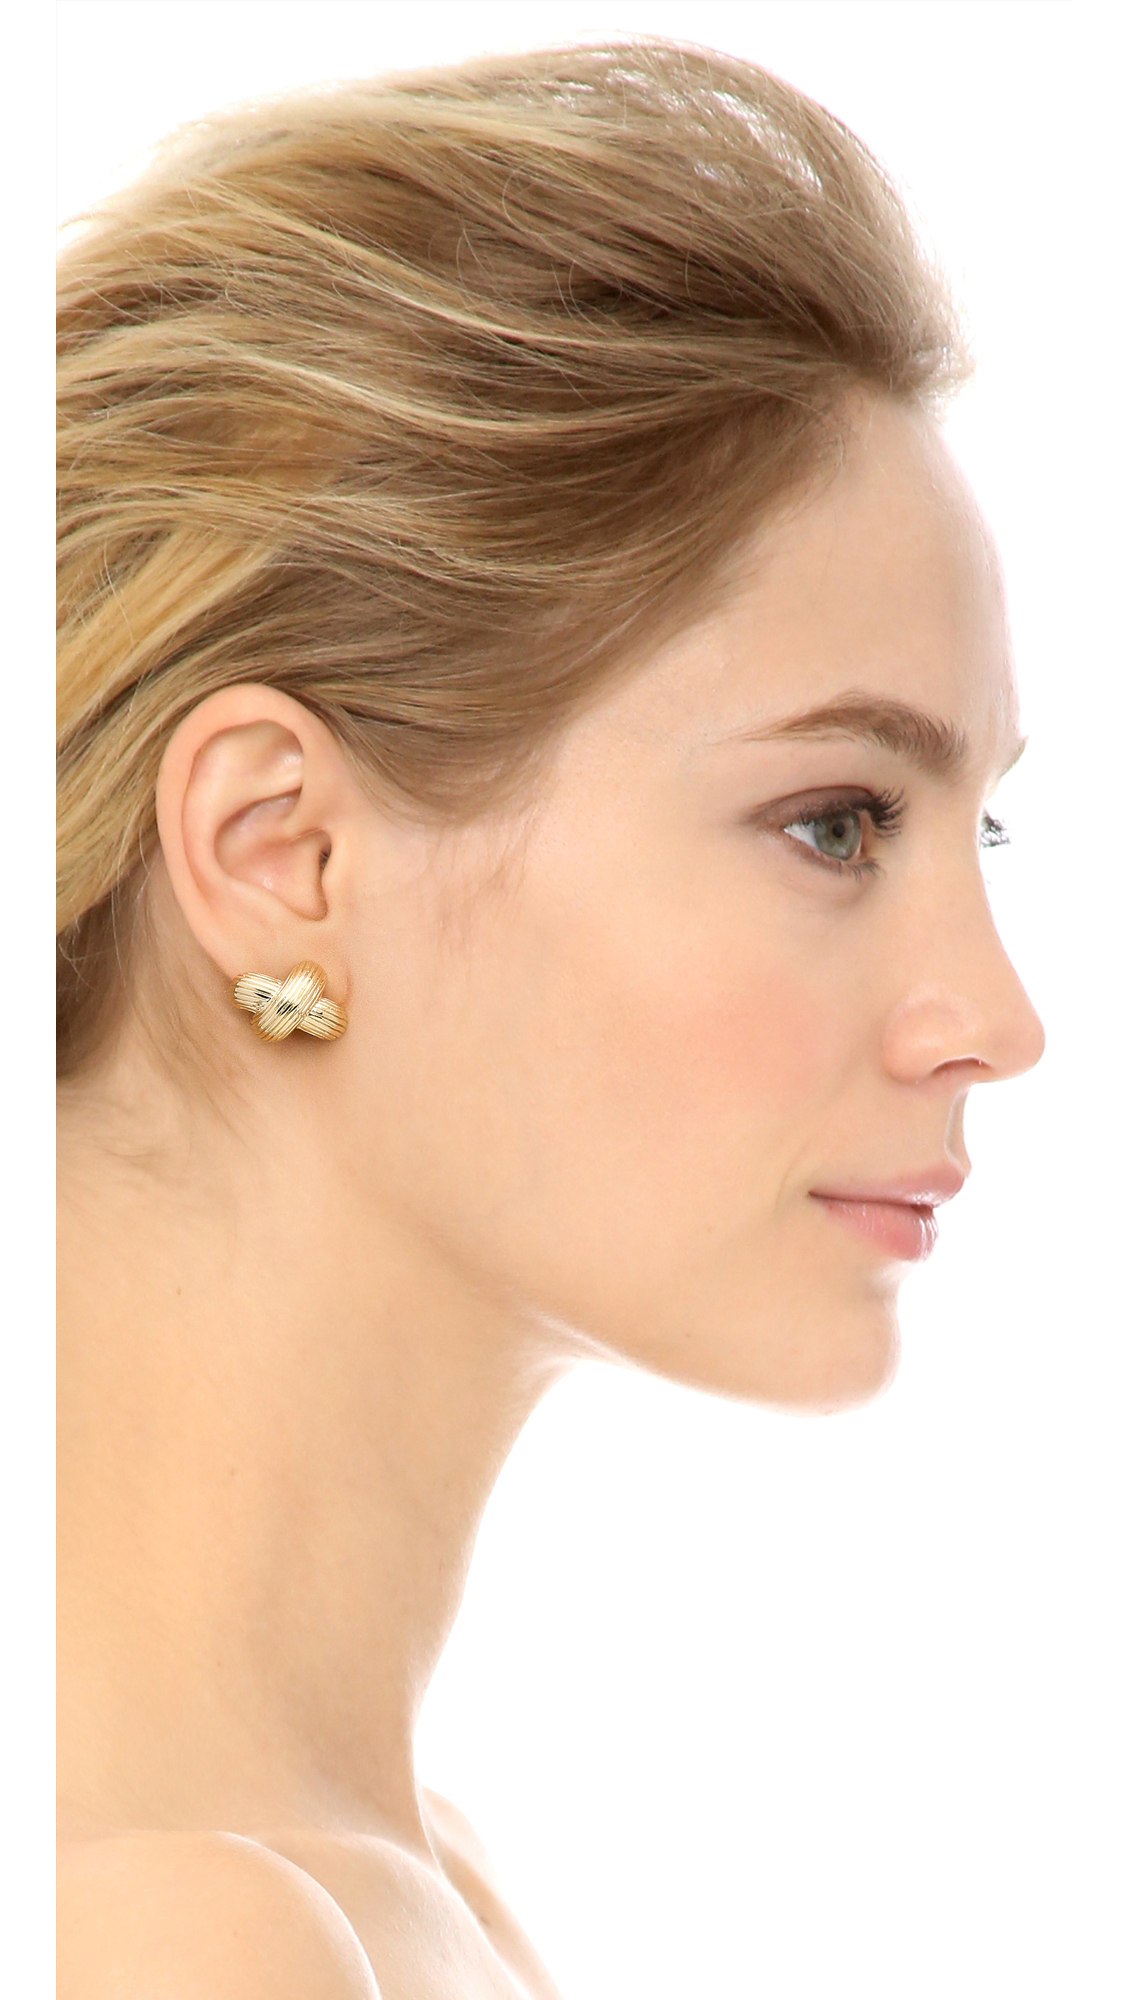 eb6fc209612ea Giles & Brother Large X Knot Earrings - Gold in Metallic - Lyst